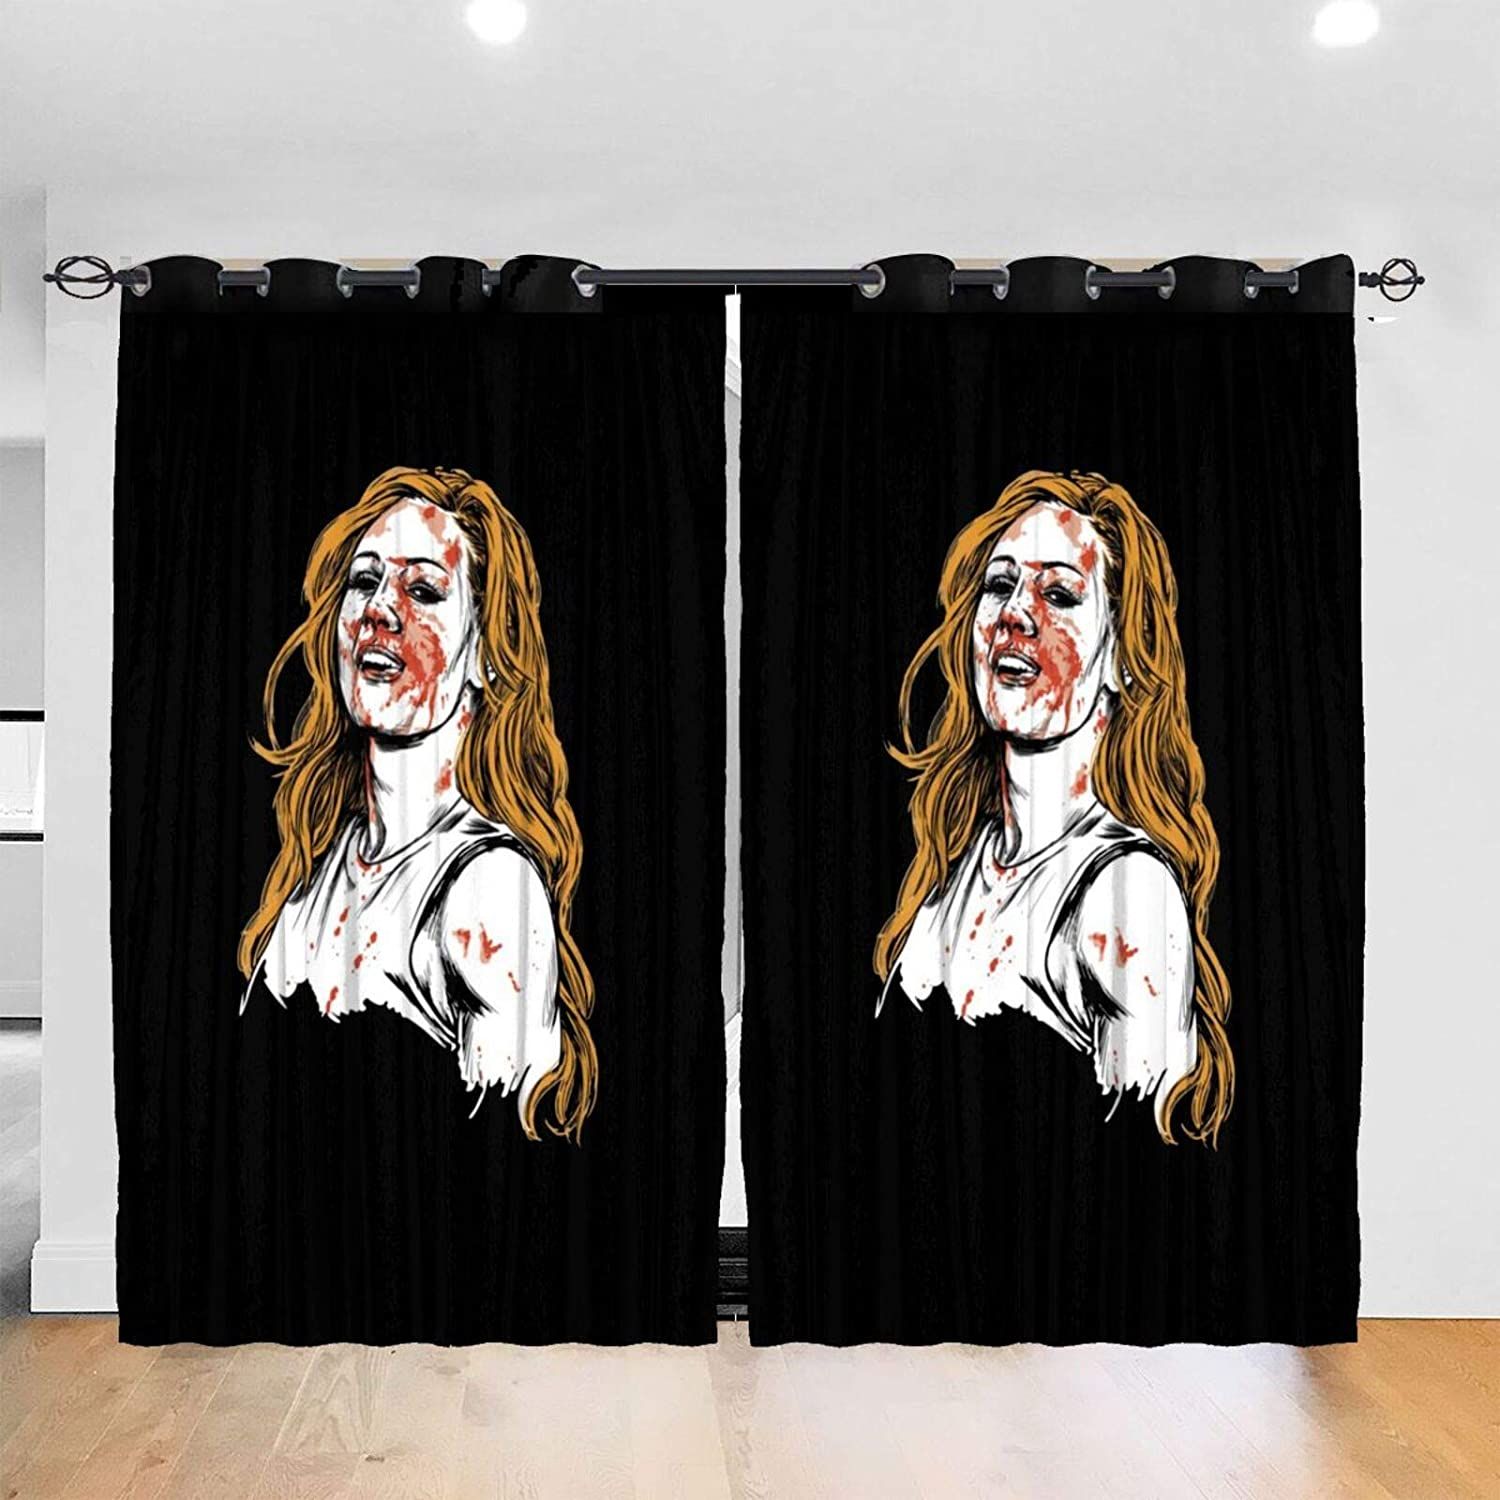 BAIJEN Becky Lynch Funny Blackout Window Curtains Thermal Insulated Room Darkening Drape for Bedroom Living Room 52 X 72 Inch